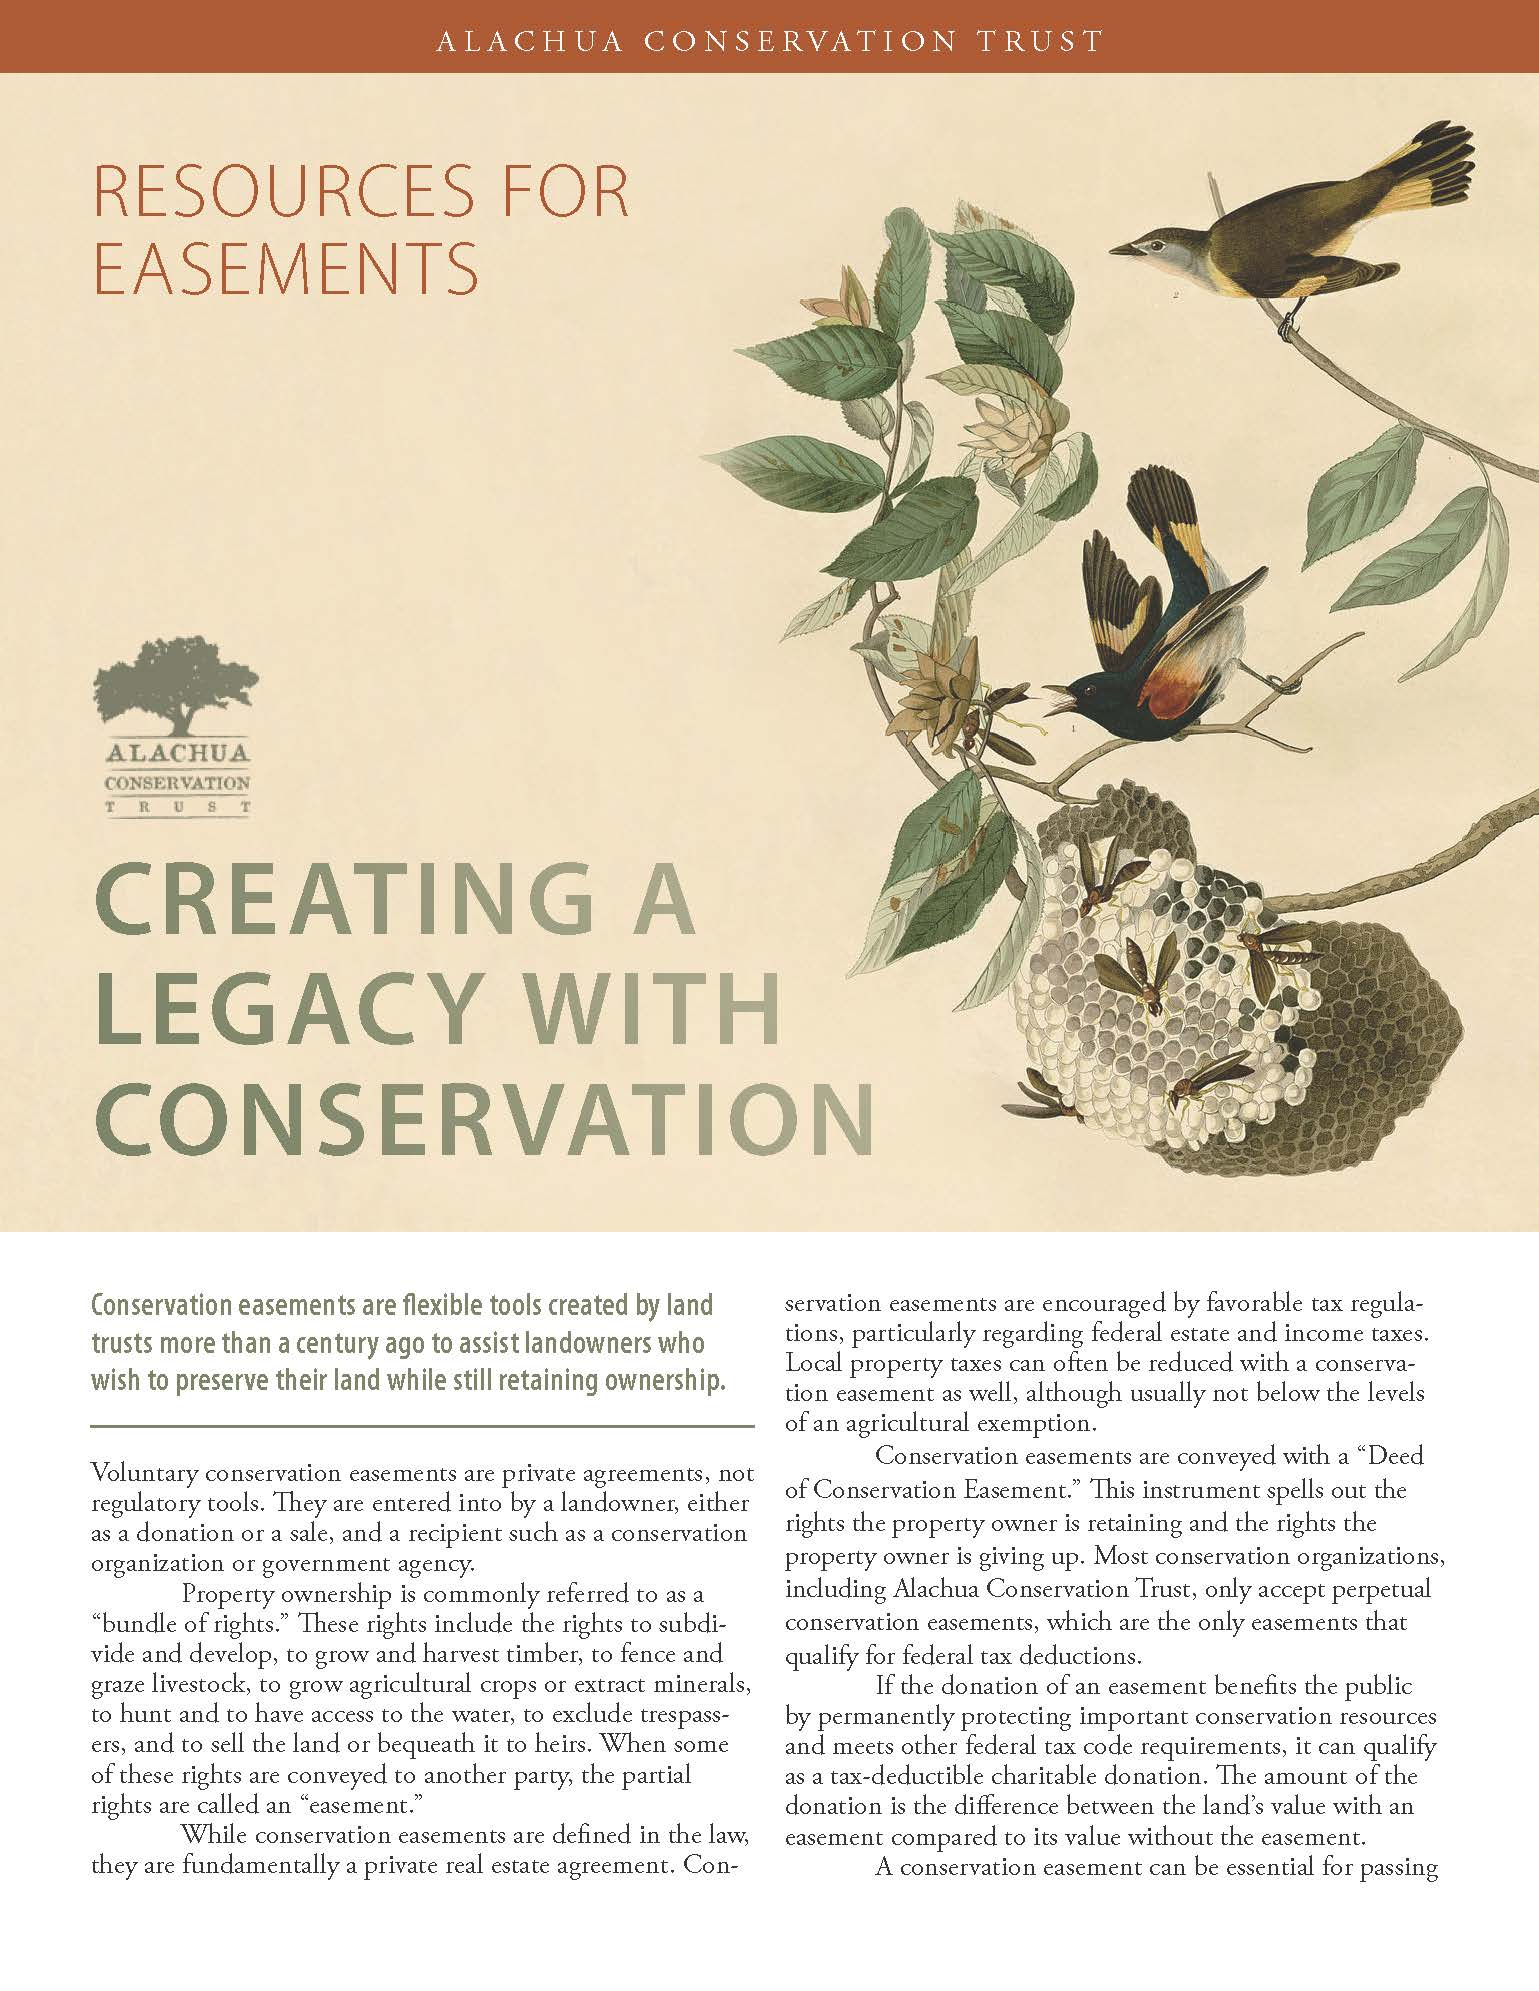 Creating a Legacy with Conservation